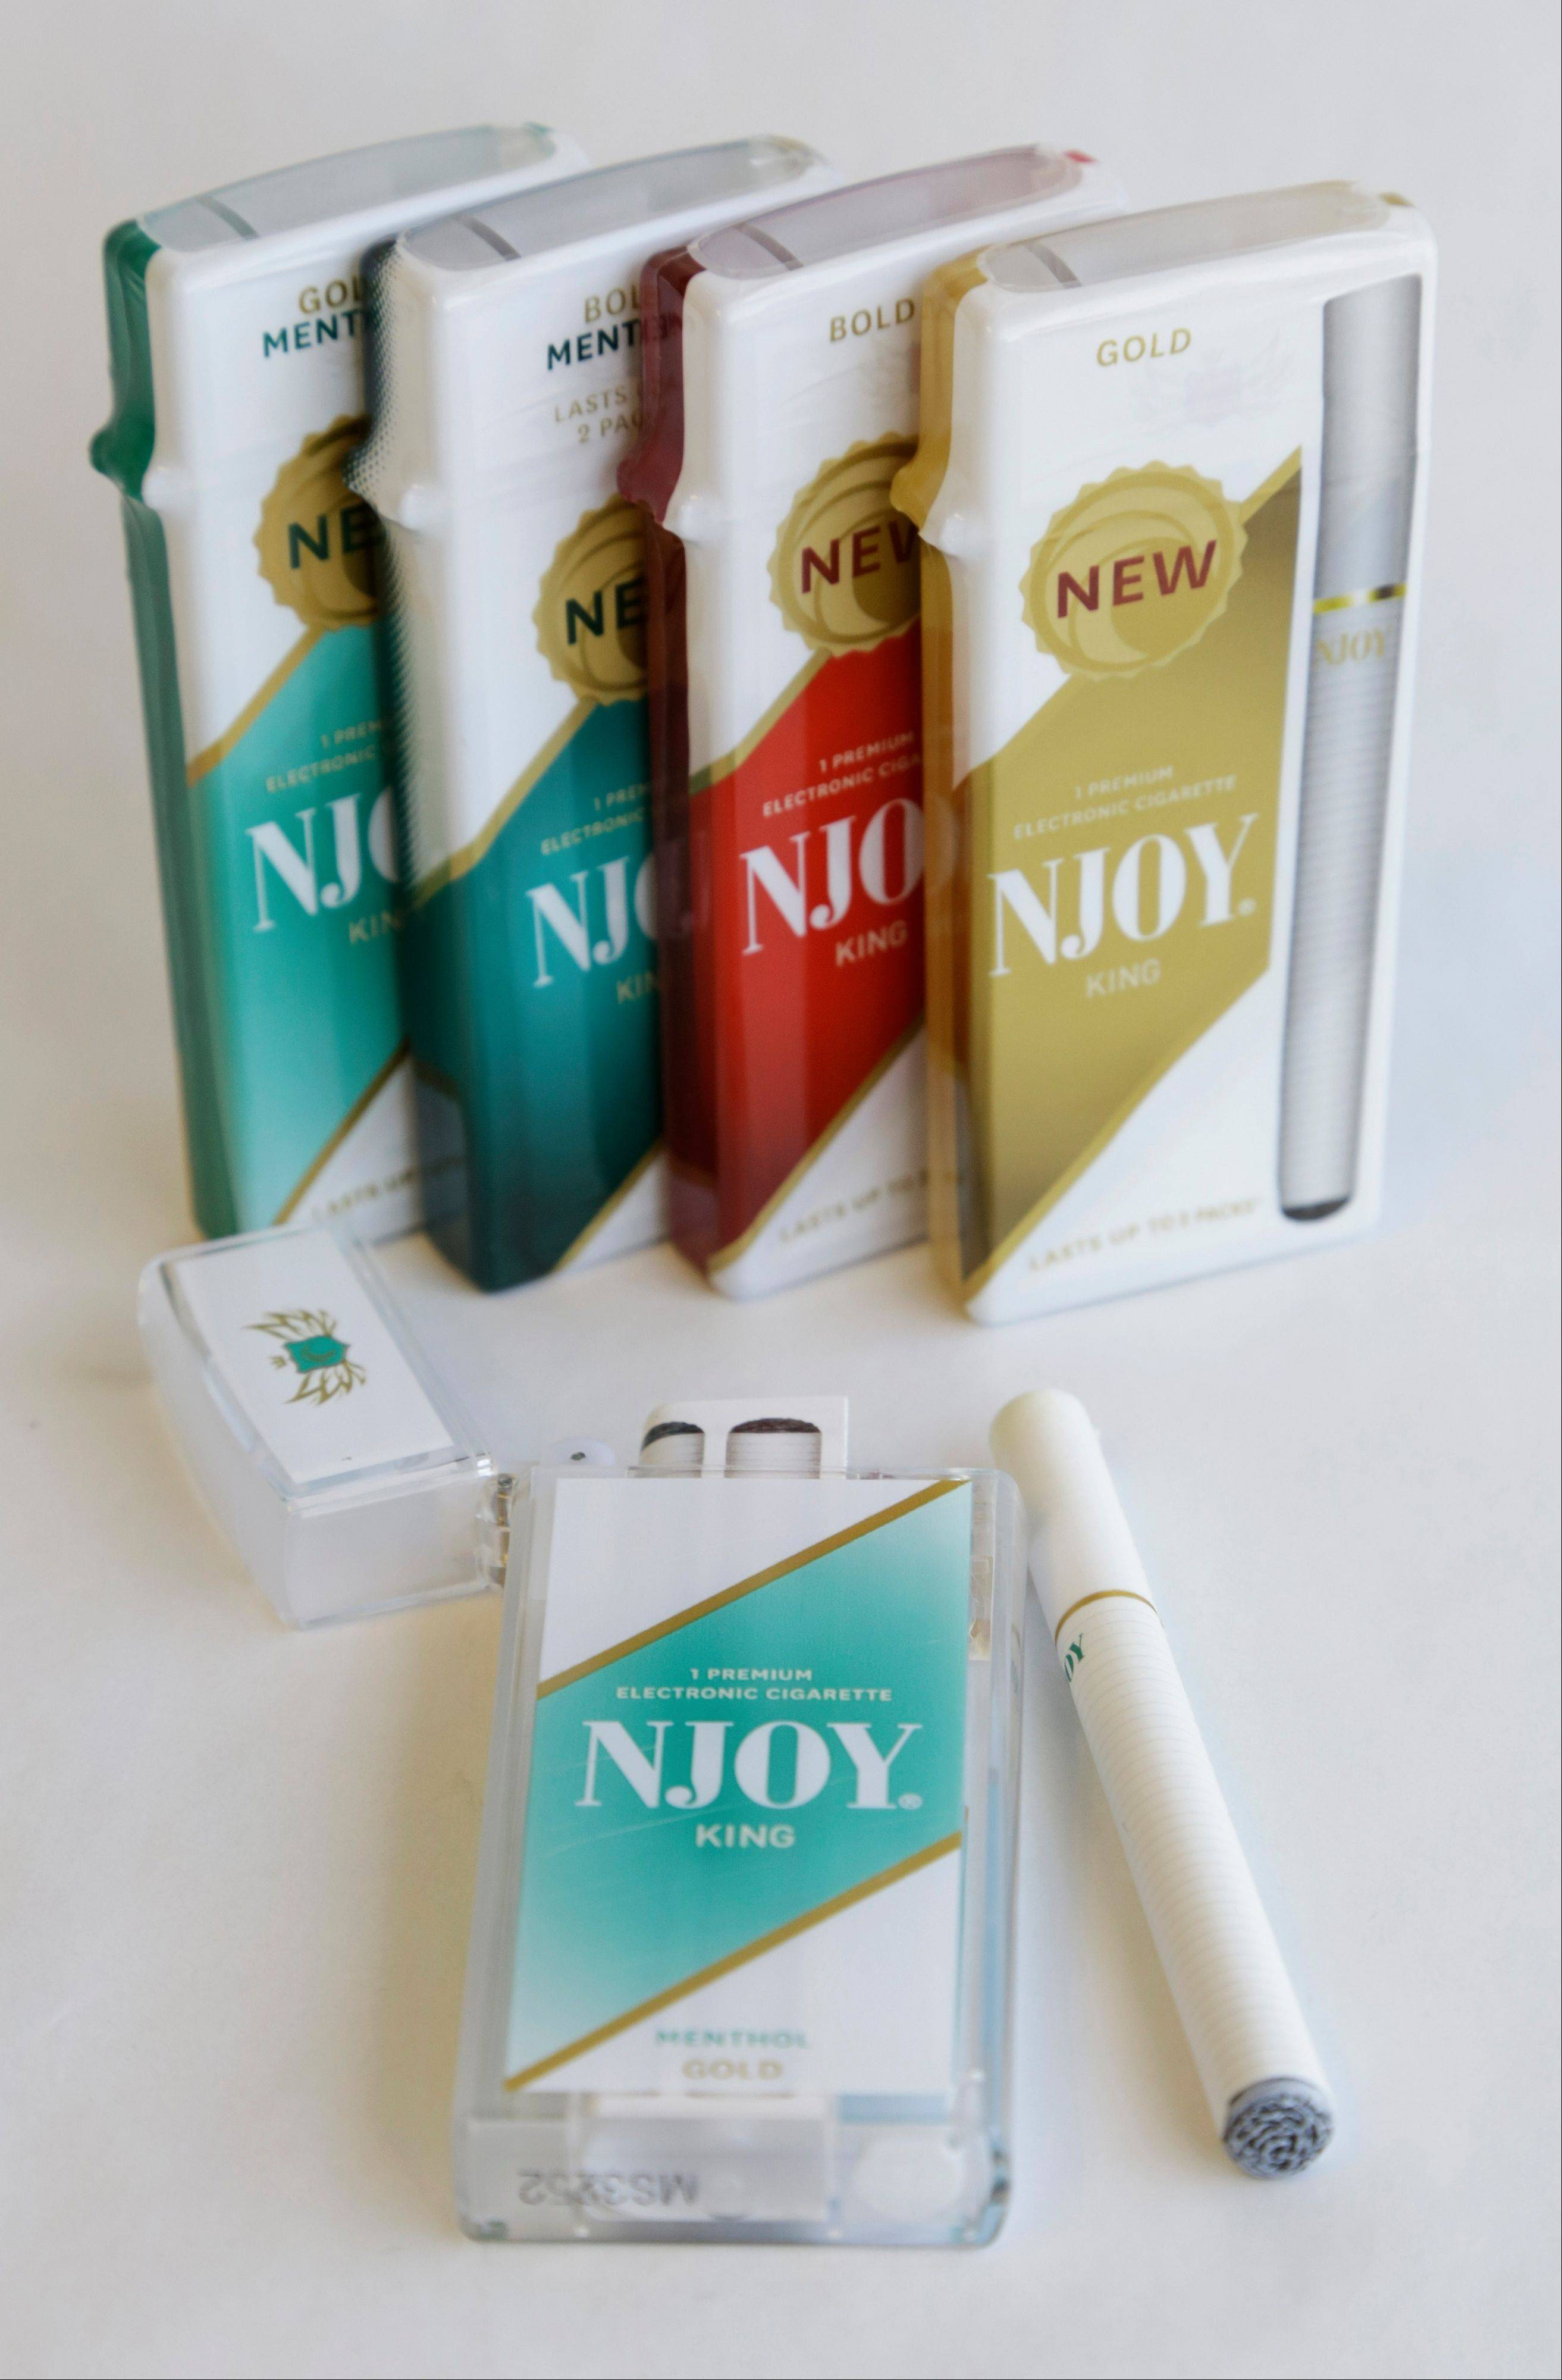 Several different versions of the NJOY electronic cigarettes are seen. Former U.S. Surgeon General Richard Carmona, who highlighted the dangers of secondhand smoke and supported a ban on all tobacco products, is joining the board of directors for NJOY Inc., the nation's leading electronic cigarette company -- a move that could bring increased legitimacy to e-cigarettes as a viable alternative to traditional cigarettes.